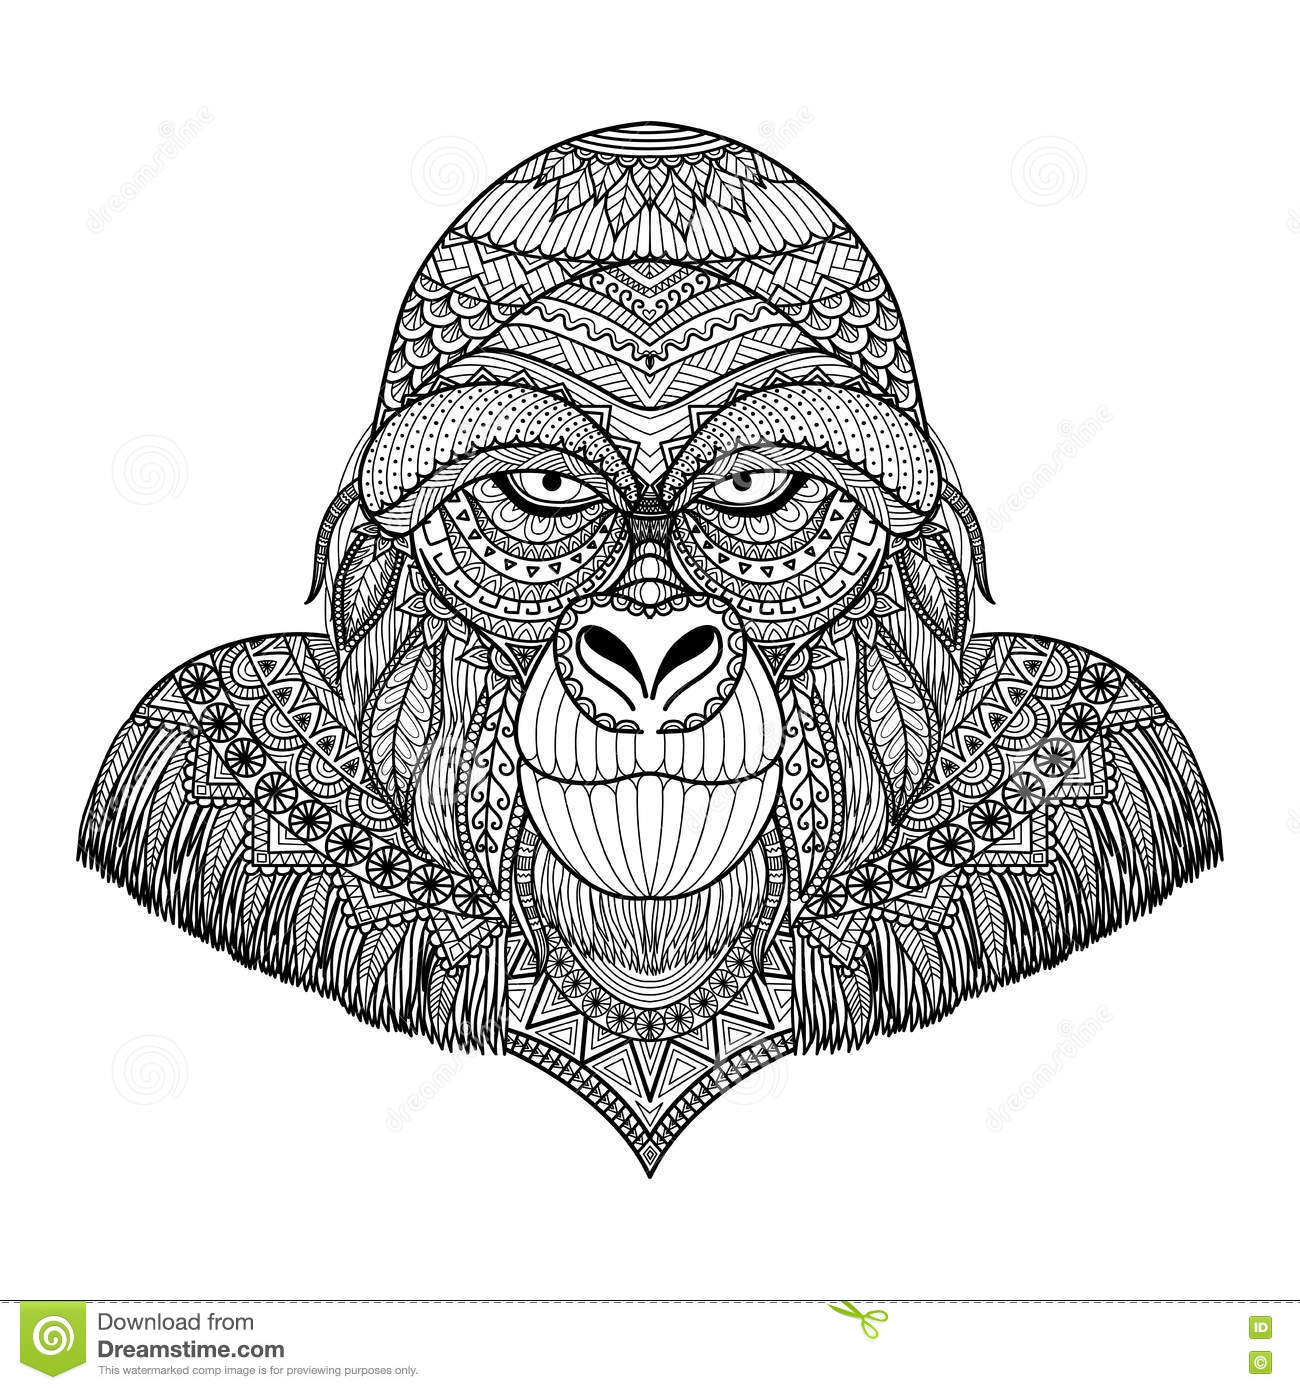 gorilla face coloring pages gorilla crayolacomau face coloring pages gorilla